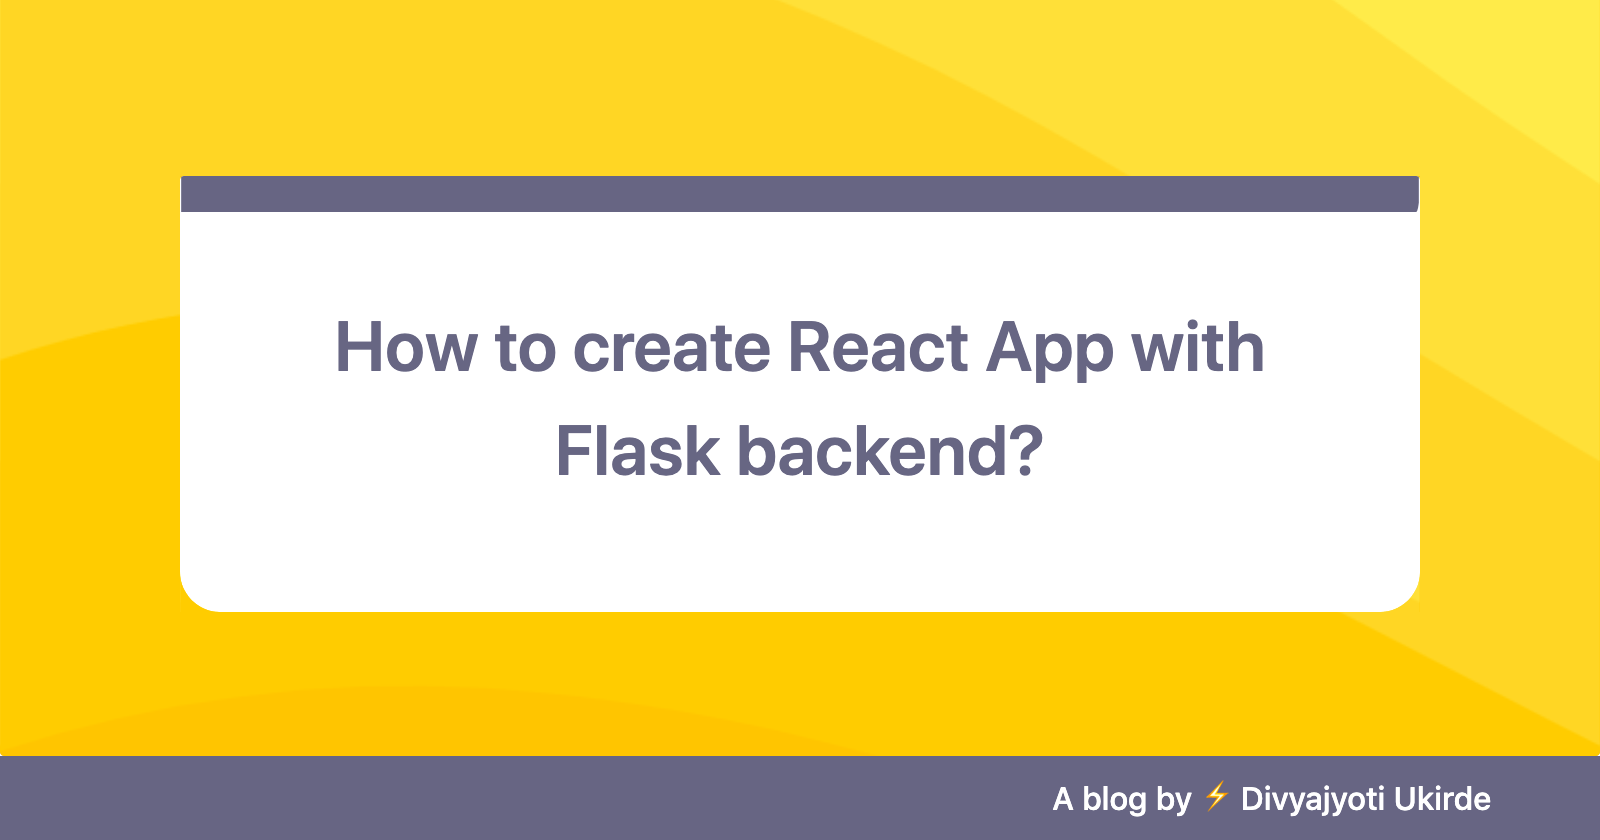 How to create React App with Flask backend?